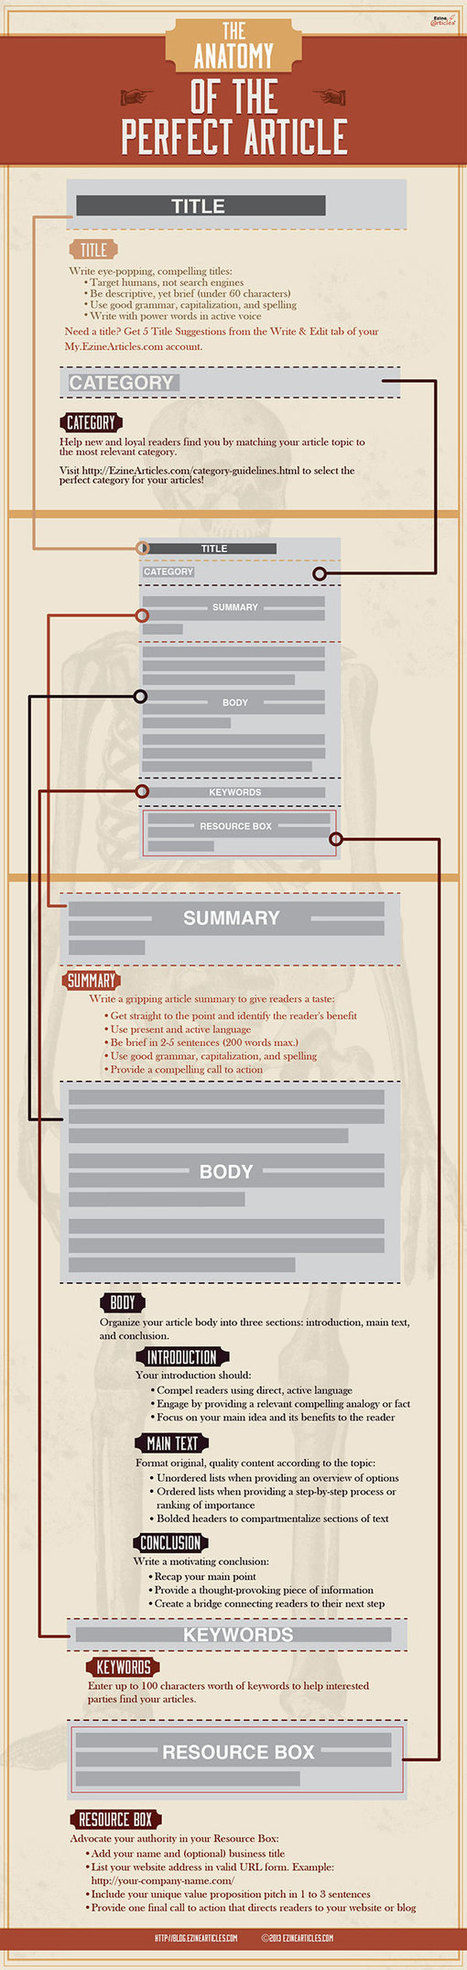 How To Write A Perfect Article For A  Blog – An Anatomy Infographic | Viral Classified News | Scoop.it